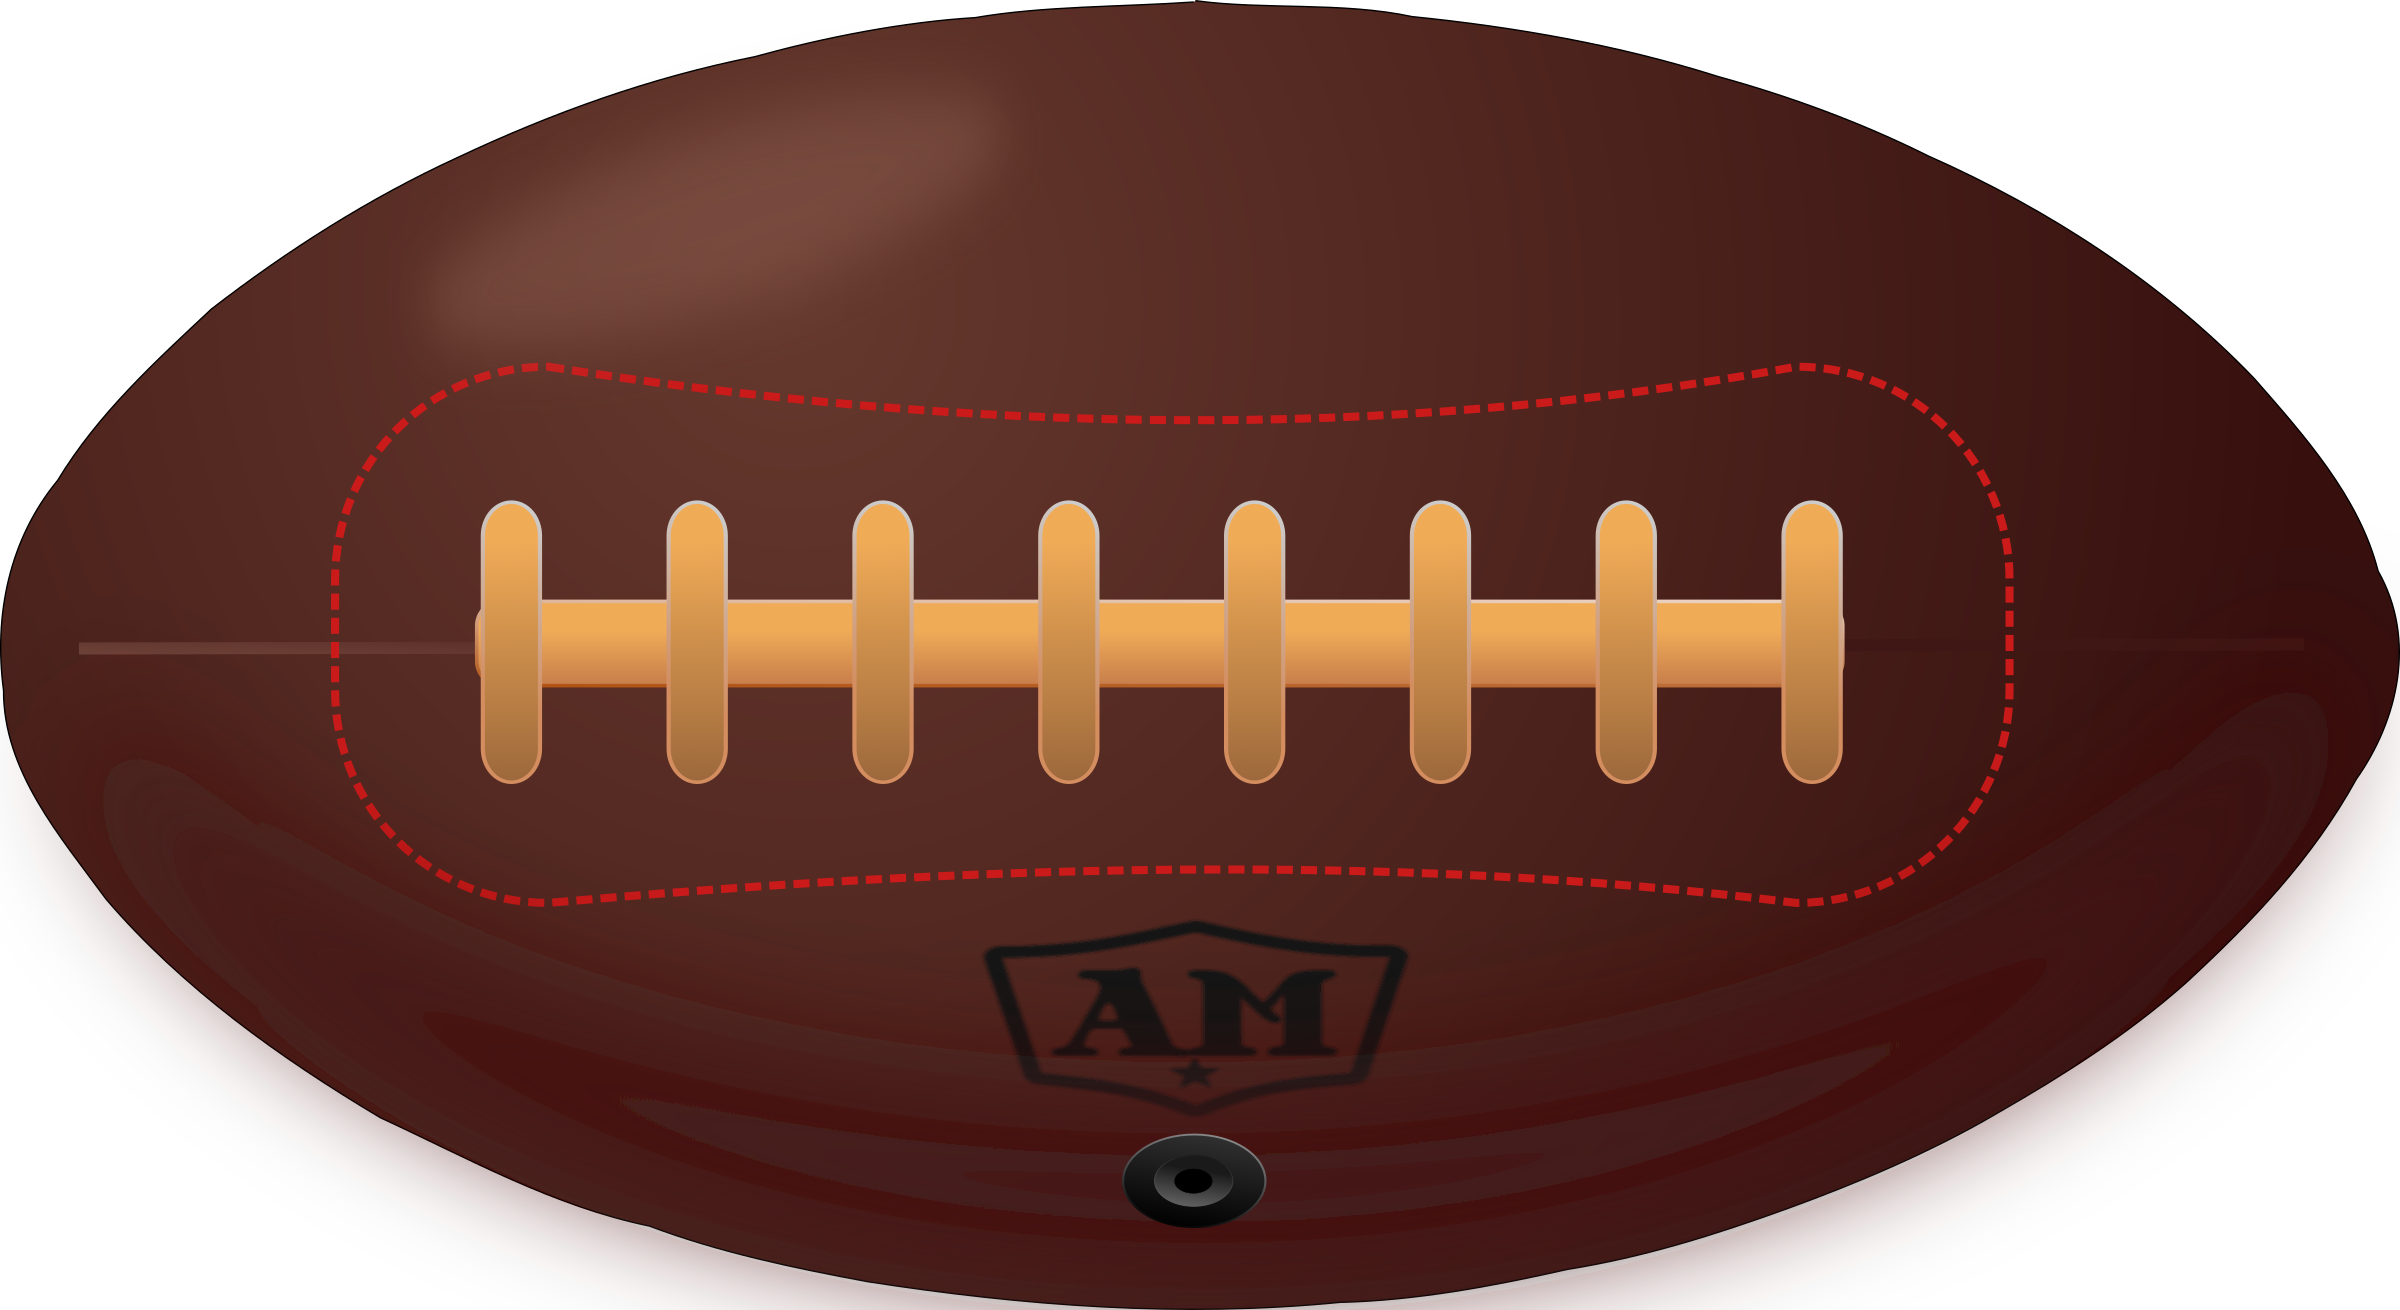 Clipart - Vintage American Football picture free download